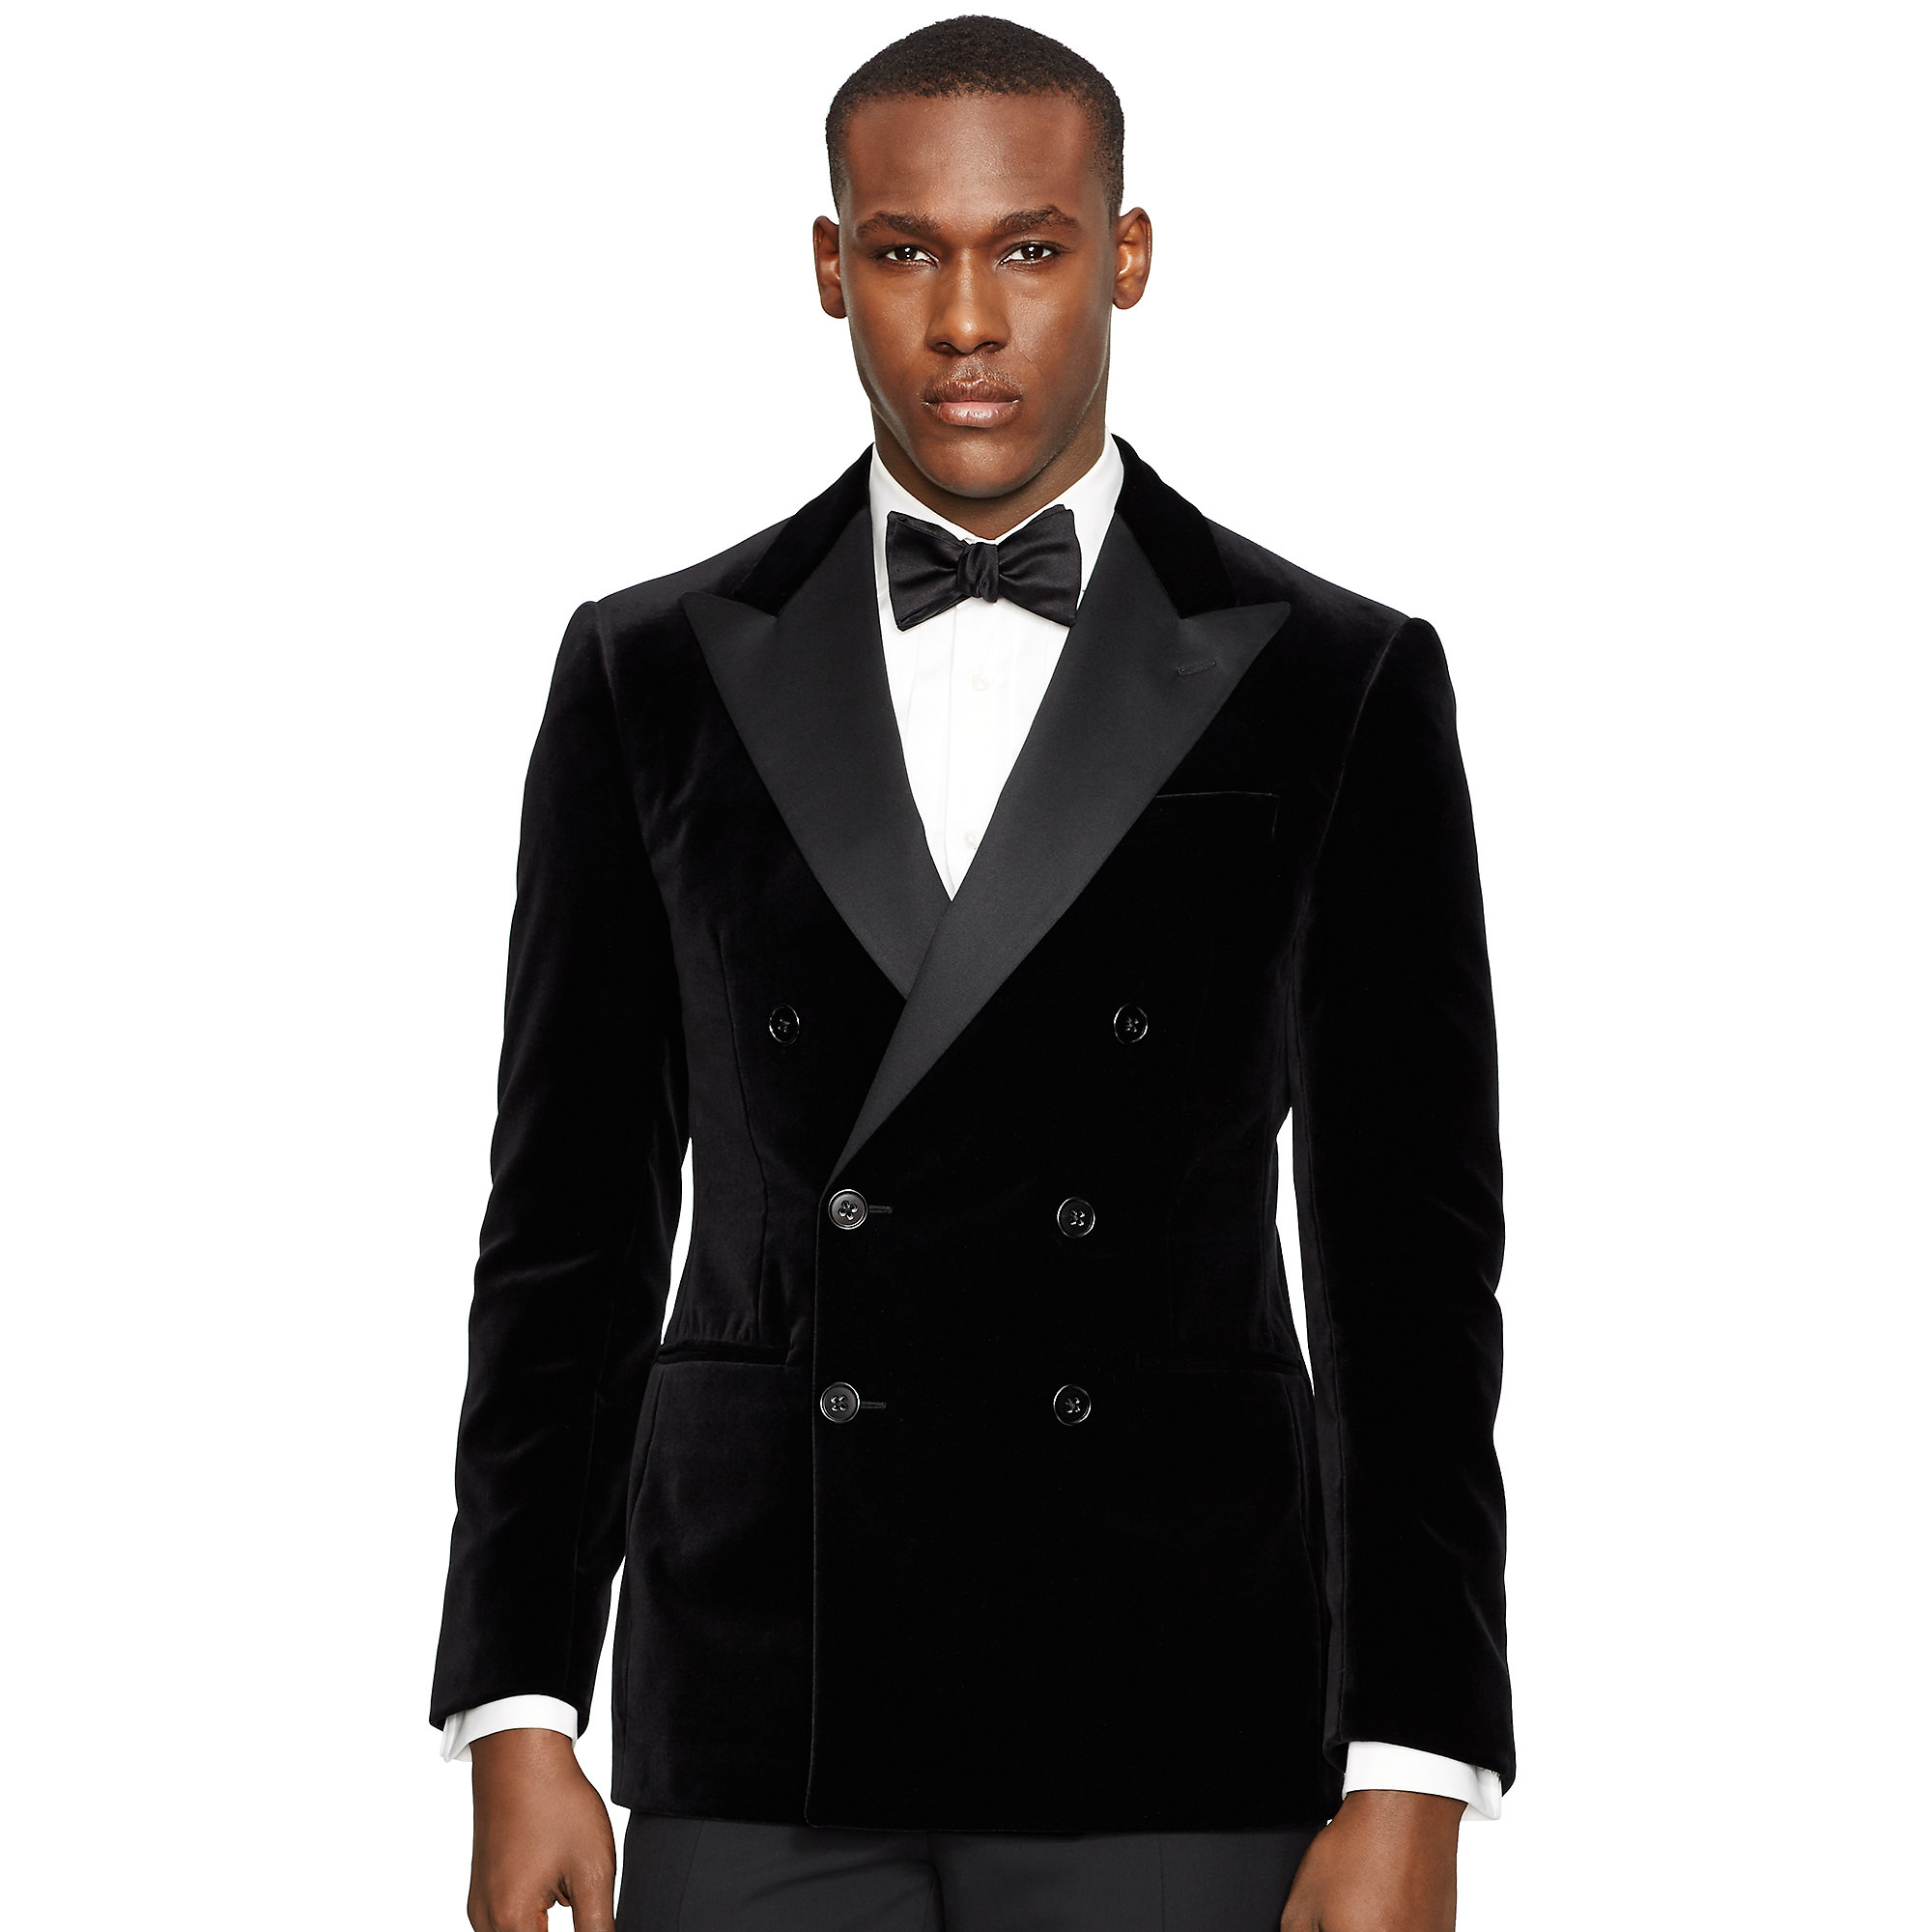 Manufacturer of Men's Cabaret Jackets. Sequin effect jackets. Suitable for entertainers, cabaret singers, impersonators and tribute acts, children's entertainers, theatre groups.